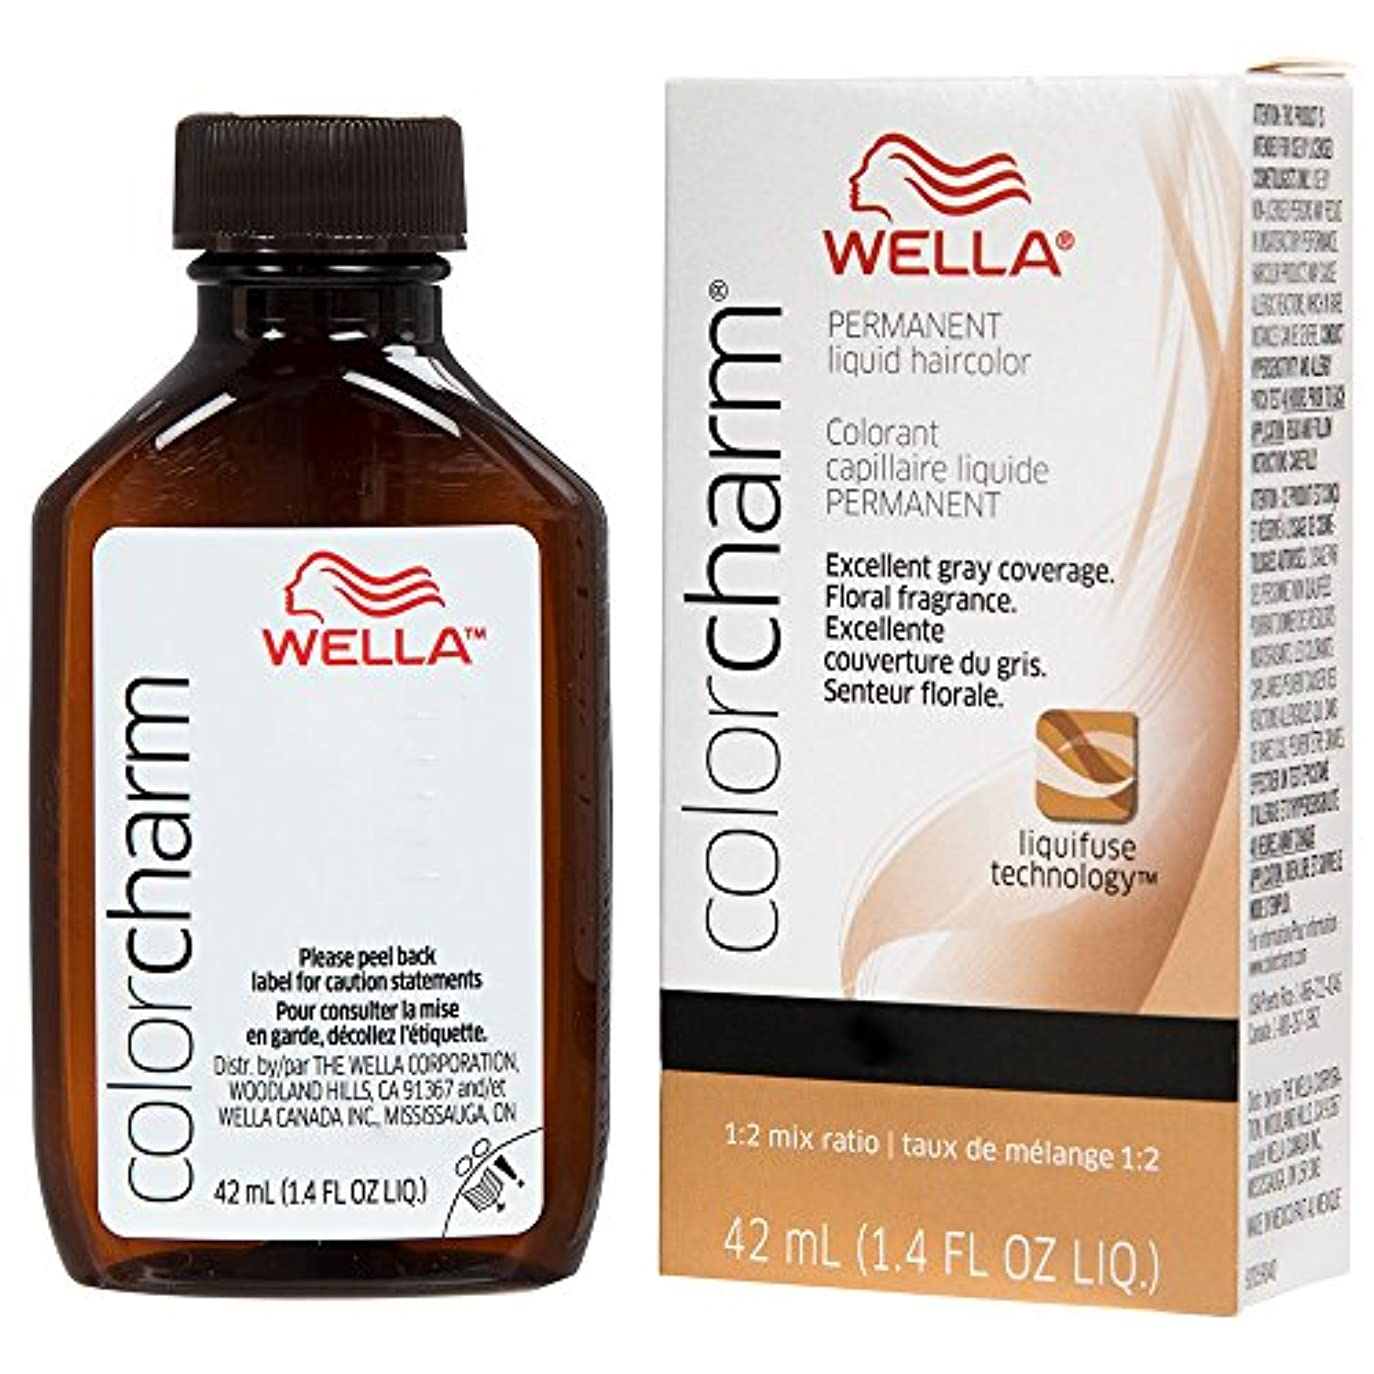 ポール持ってるびっくりしたWella - Colorcharm - Permanent Liquid - Medium Blonde 7N /711-1.4 OZ / 42 mL